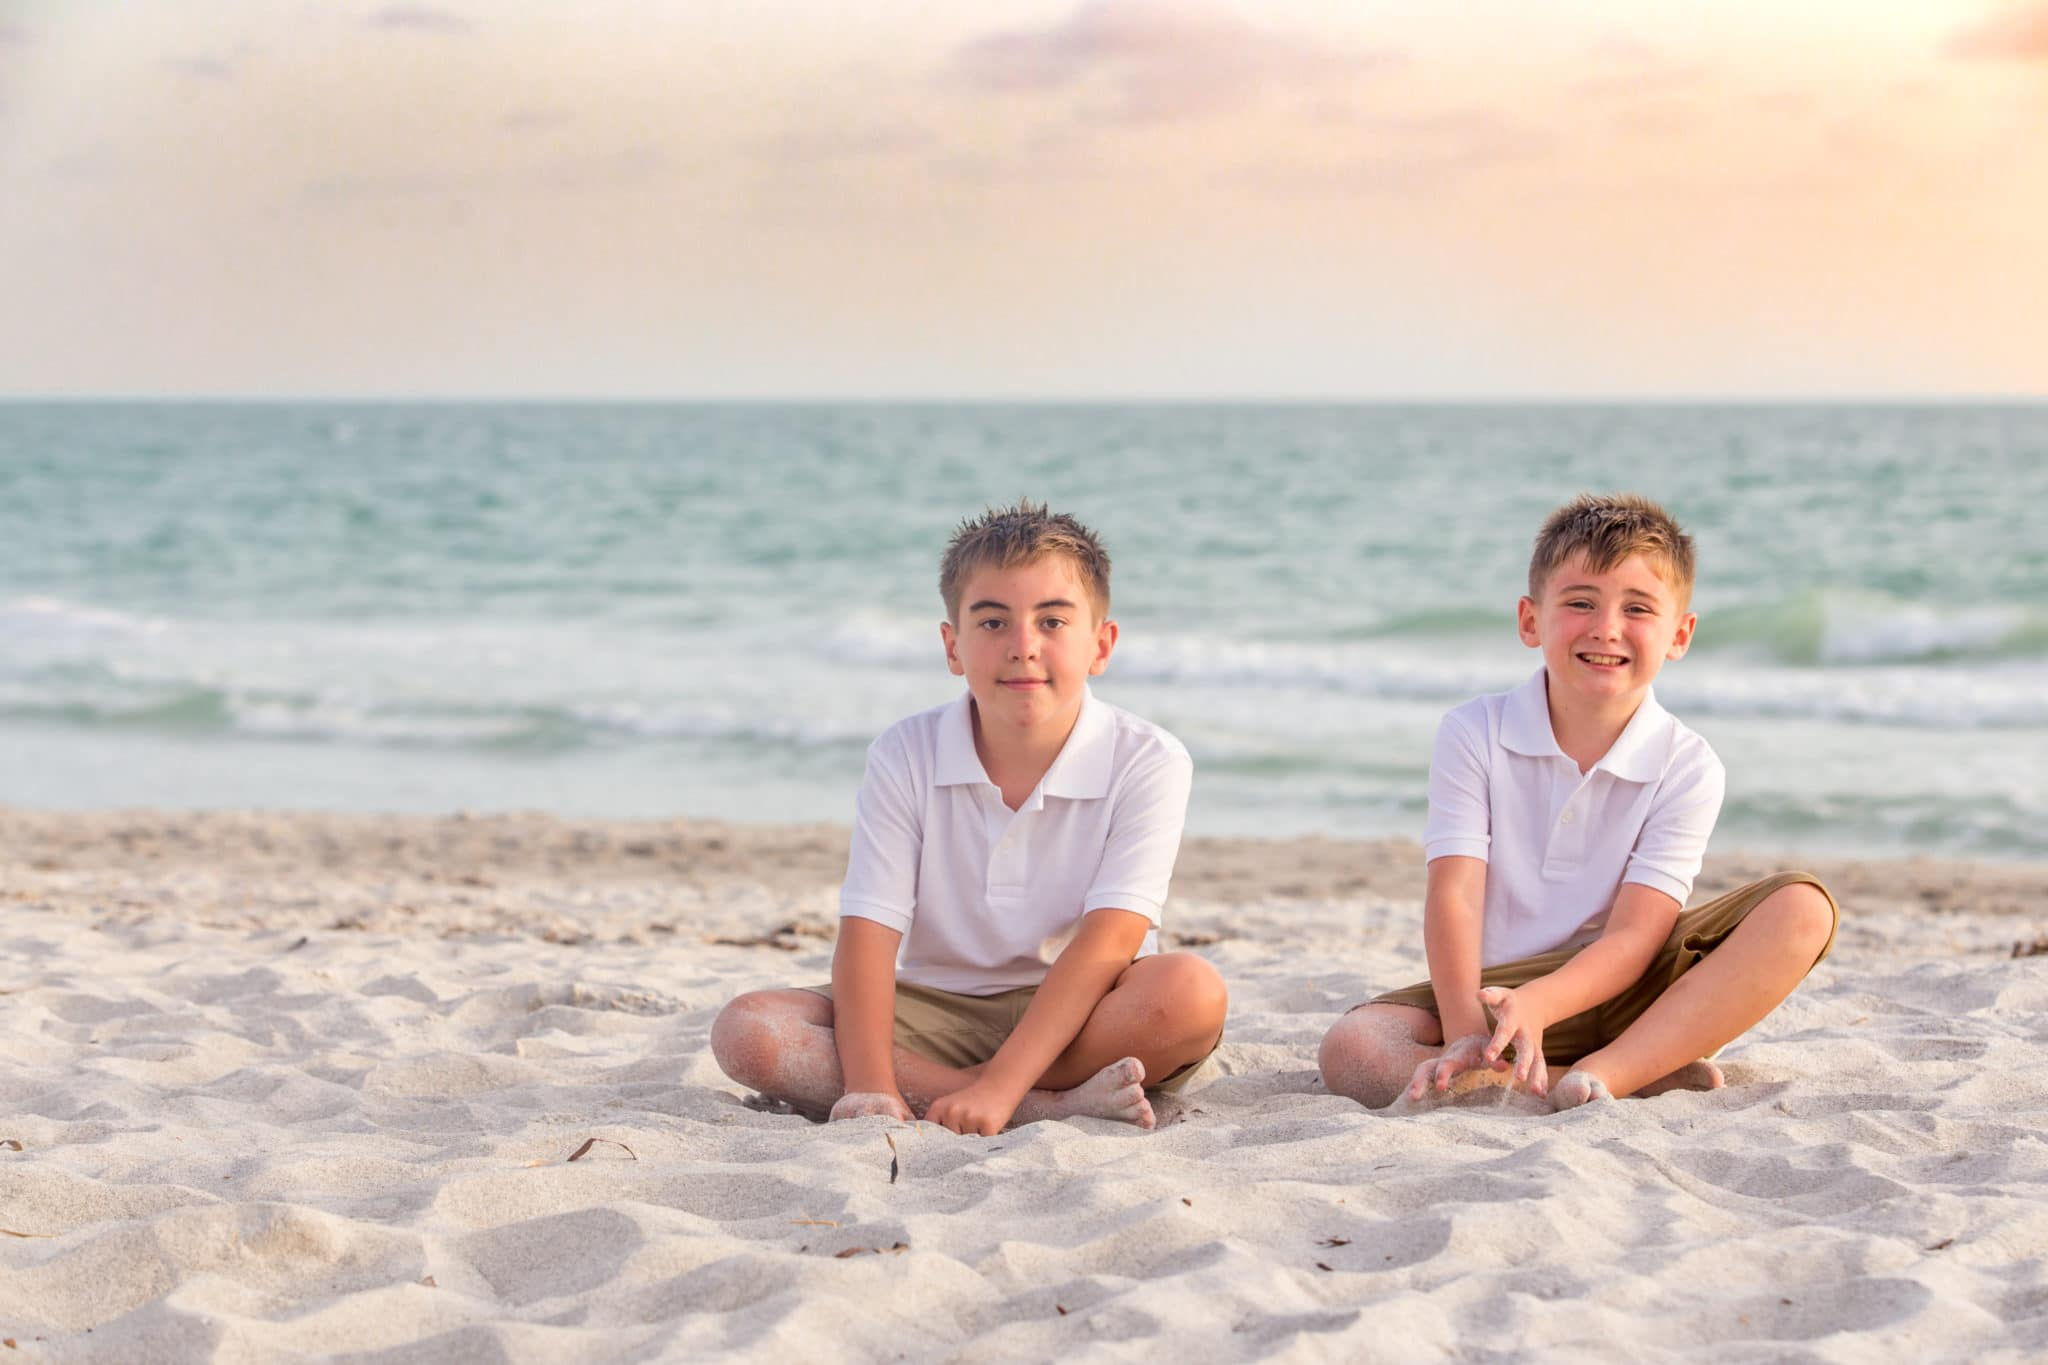 Longboat key family beach photography at sunset with ocean in the background and white sand